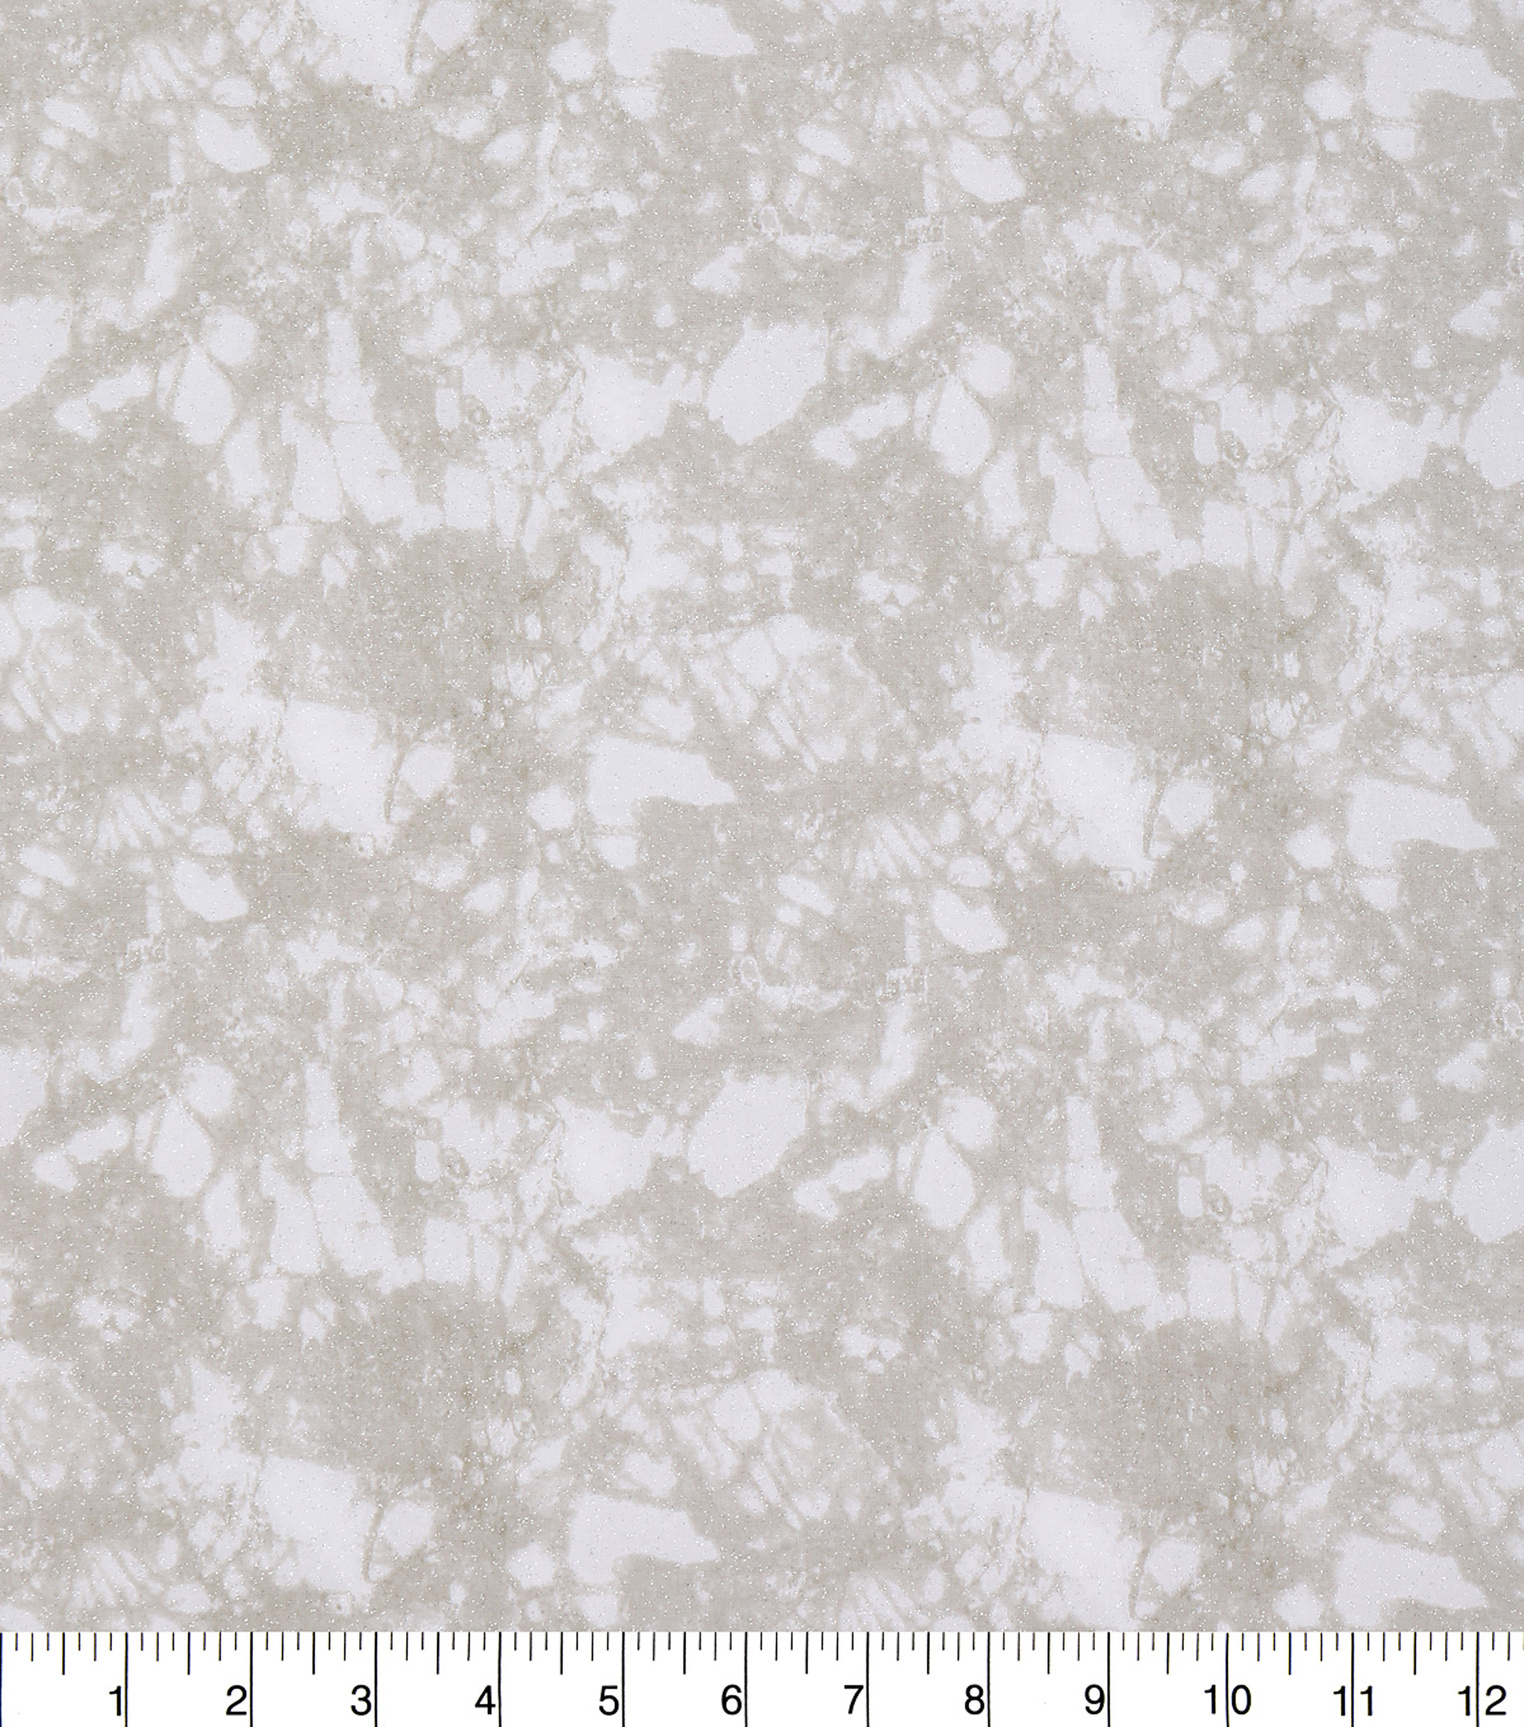 Keepsake Calico Glitter Cotton Fabric 43\u0027\u0027-Gray Snake Skin Crackle